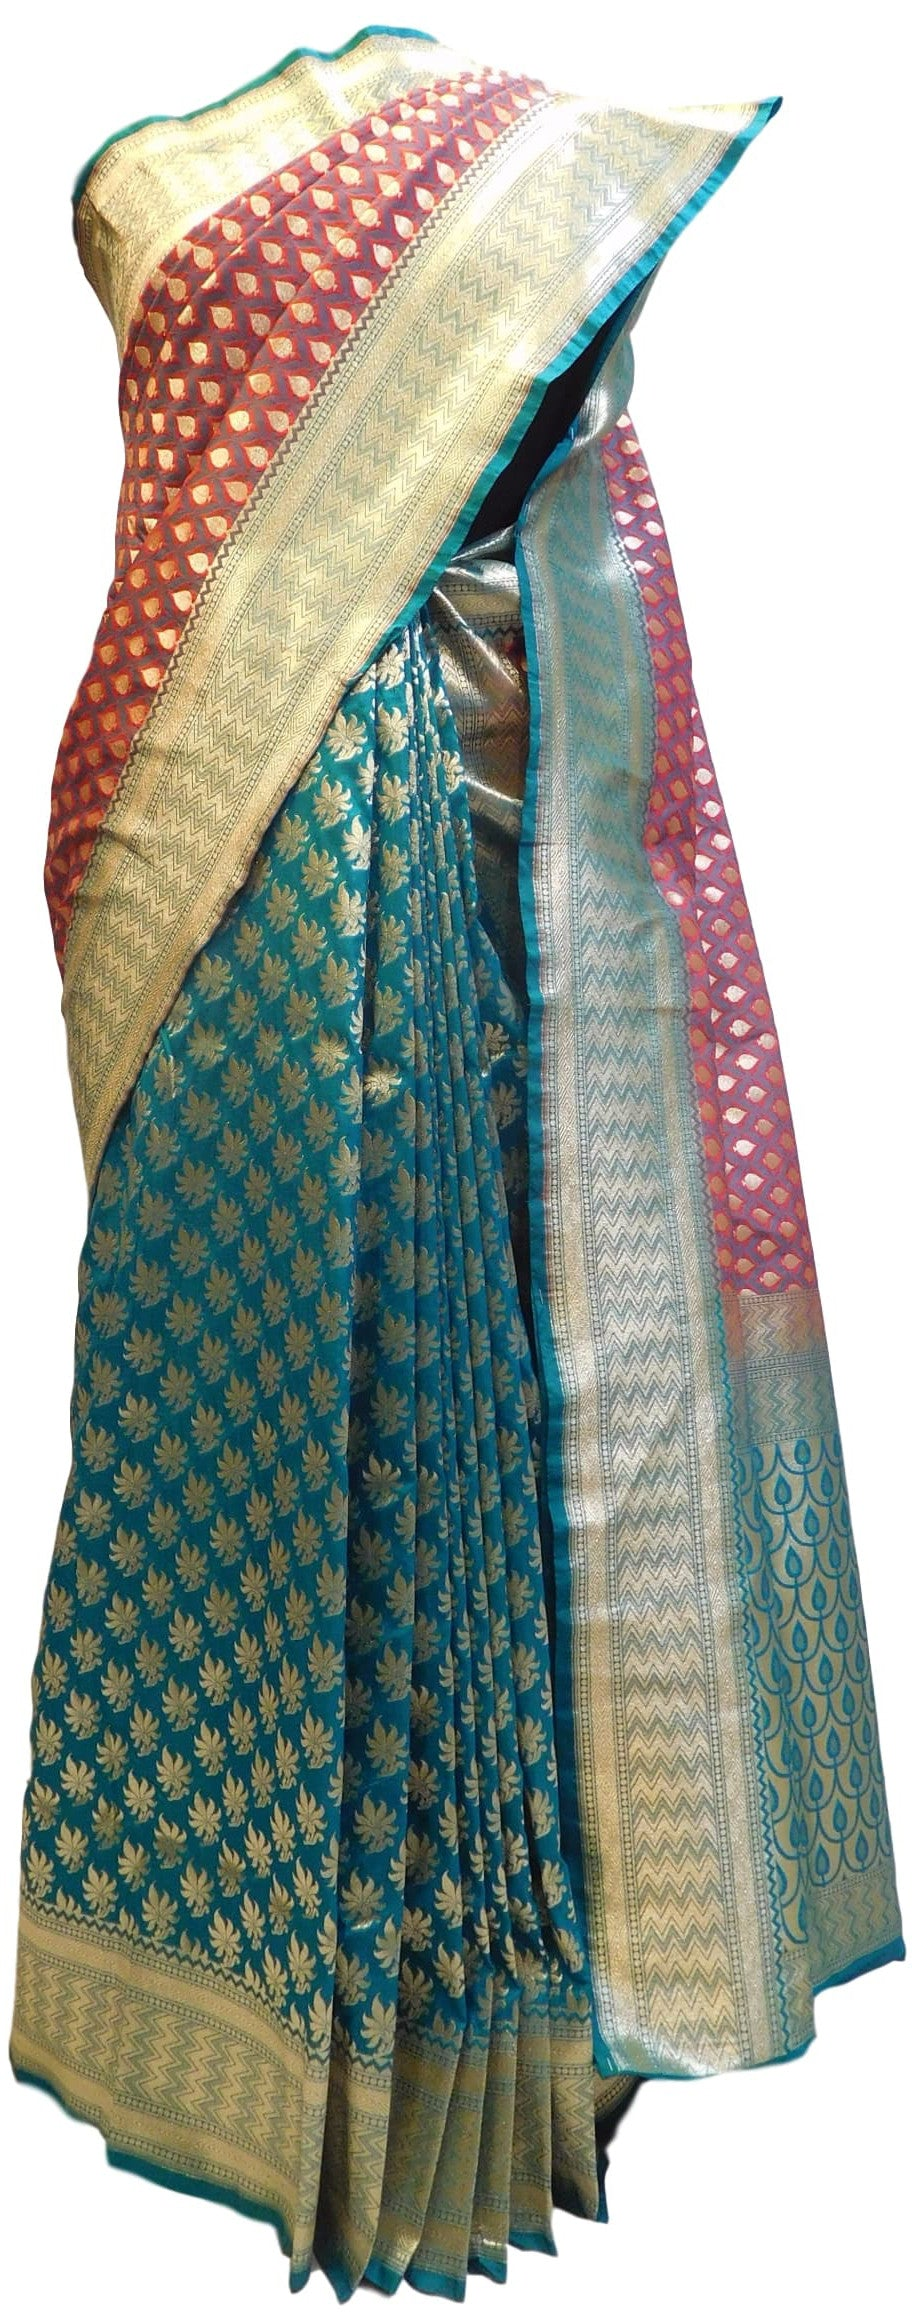 Red & Turquoise Designer Bridal Hand Weaven Pure Benarasi Zari Work Saree Sari With Blouse